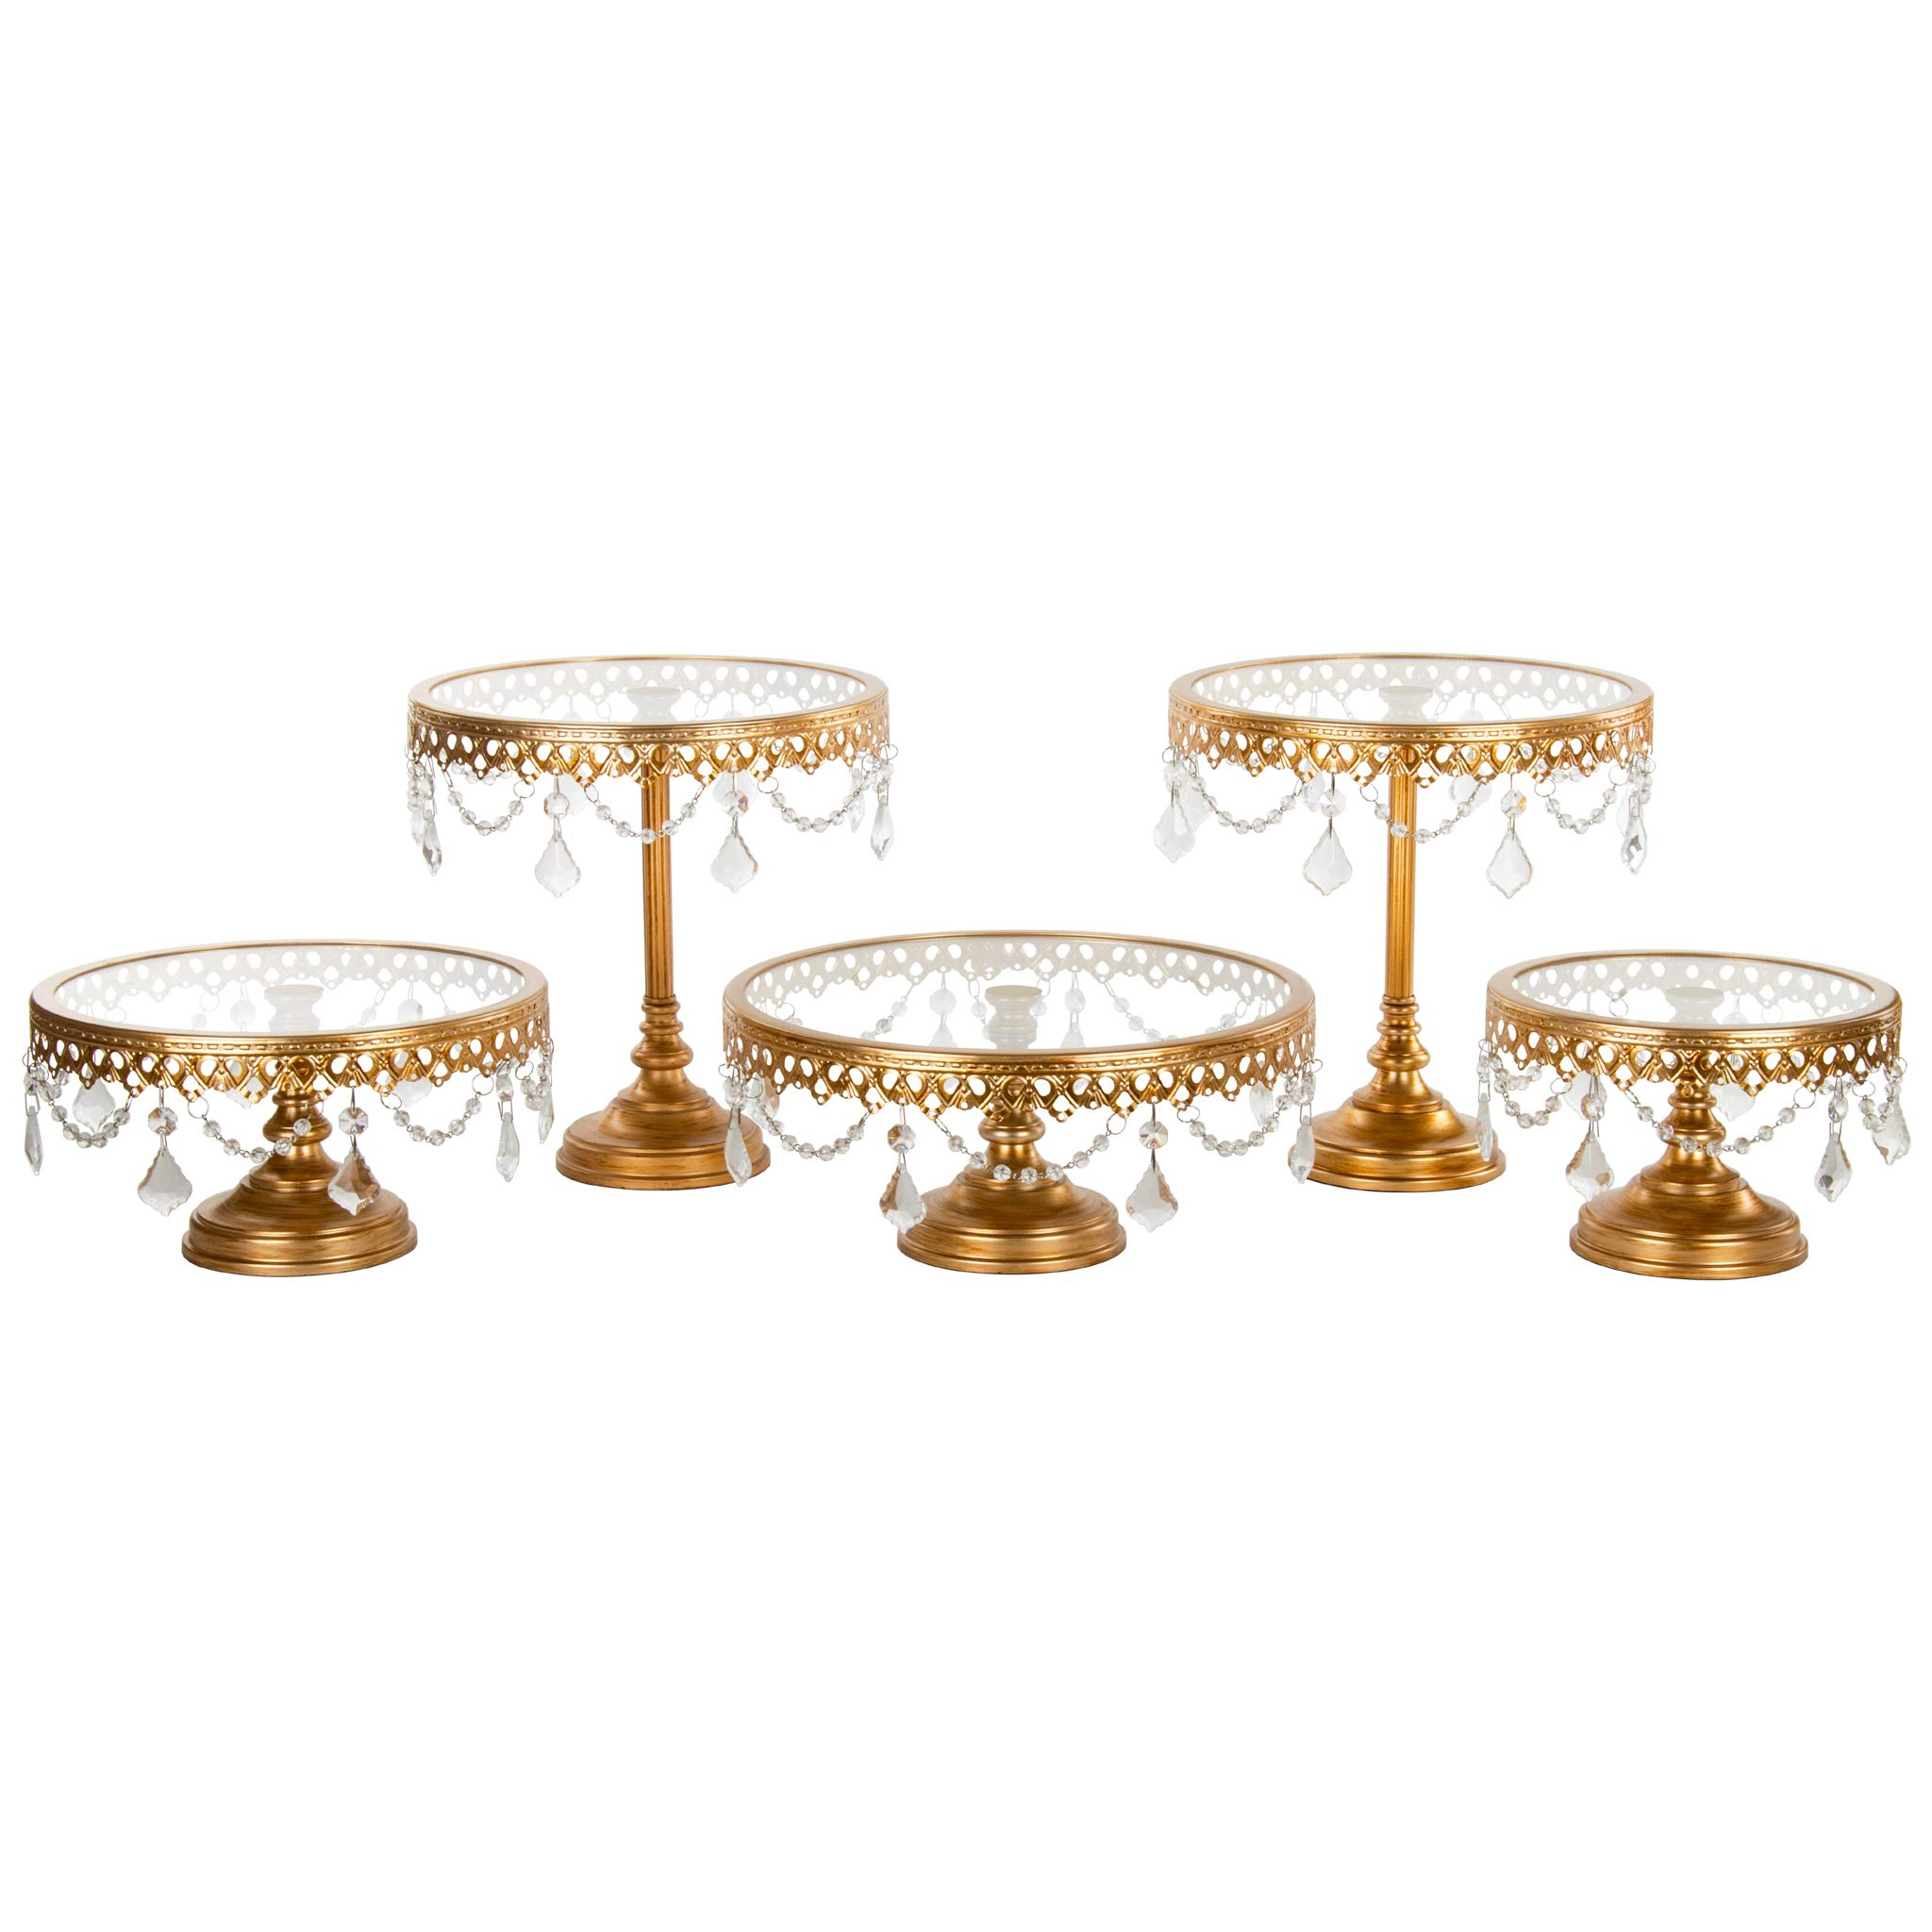 Victoria Gold Cake Stand Set of 5, Round Glass Plate Metal Dessert Cupcake Pedestal Wedding Party Display with Crystals